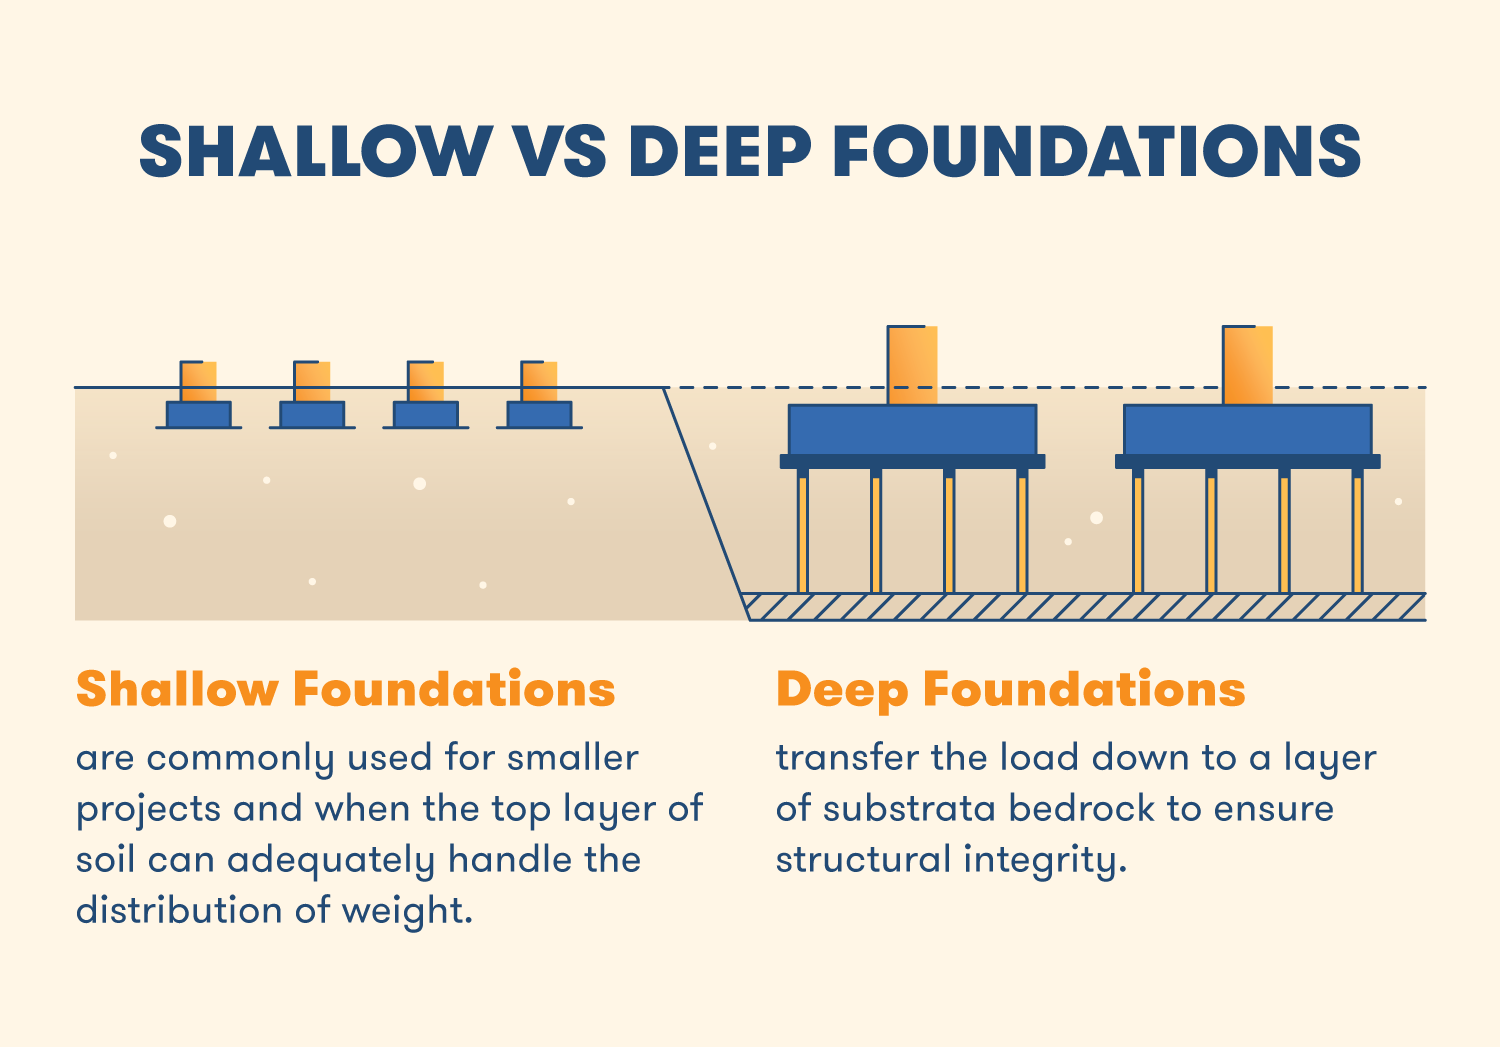 Deep Foundations transfer the load from a building down to a layer of substrata bedrock to ensure structural integrity when building on land that cannot adequately absorb the structure's weight. Shallow foundations are more commonly used for smaller construction projects and when the top layer of soil can adequately handle the distribution of weight. Even a partially submerged basement can be considered a shallow foundation.